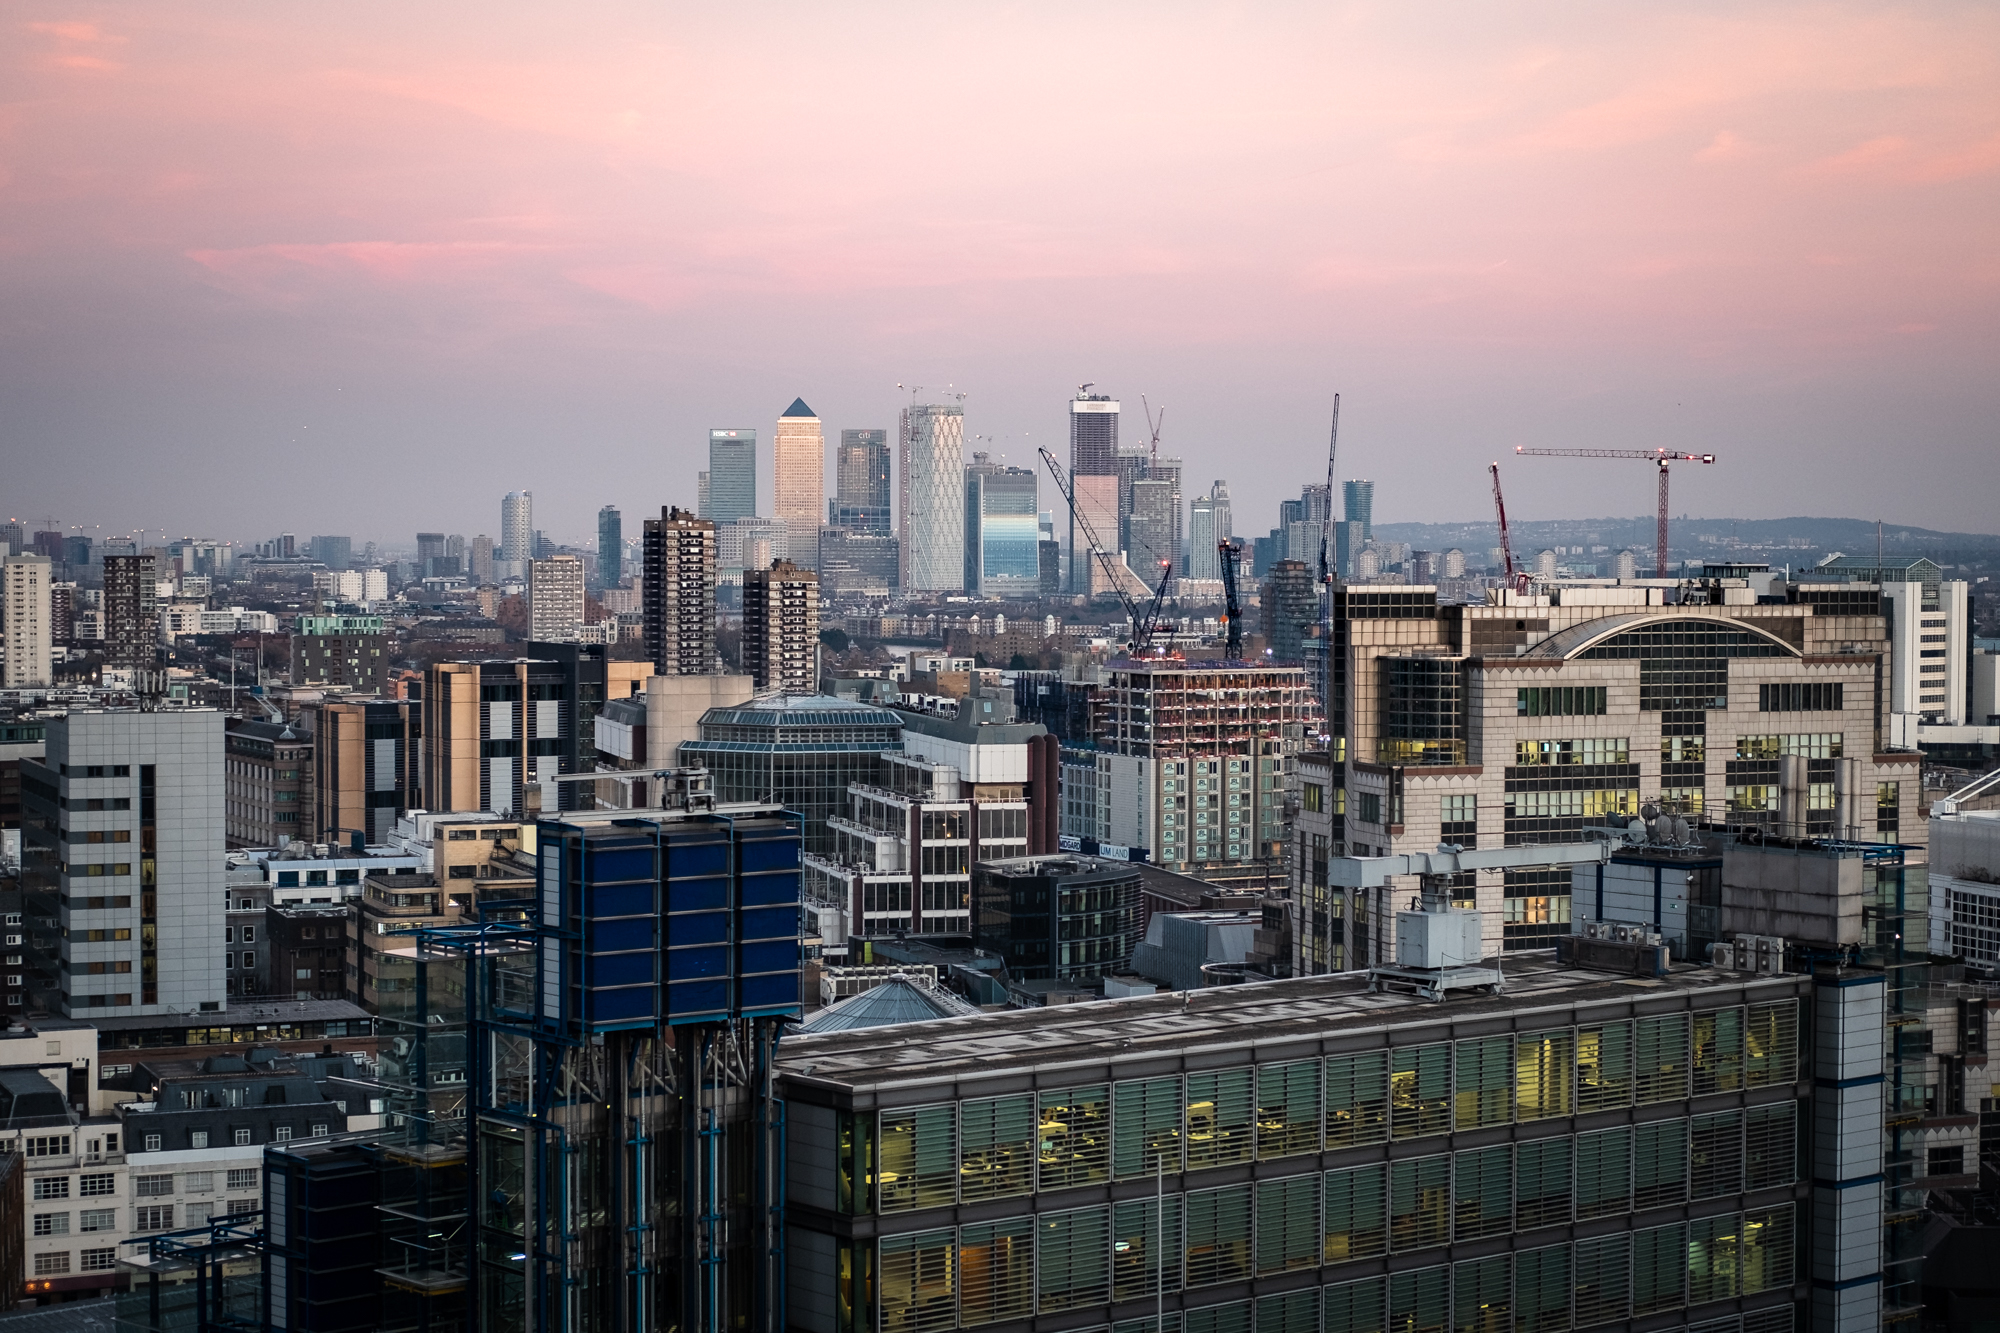 A photo of Canary Wharf taken from Garden at 120 in London by Trevor Sherwin